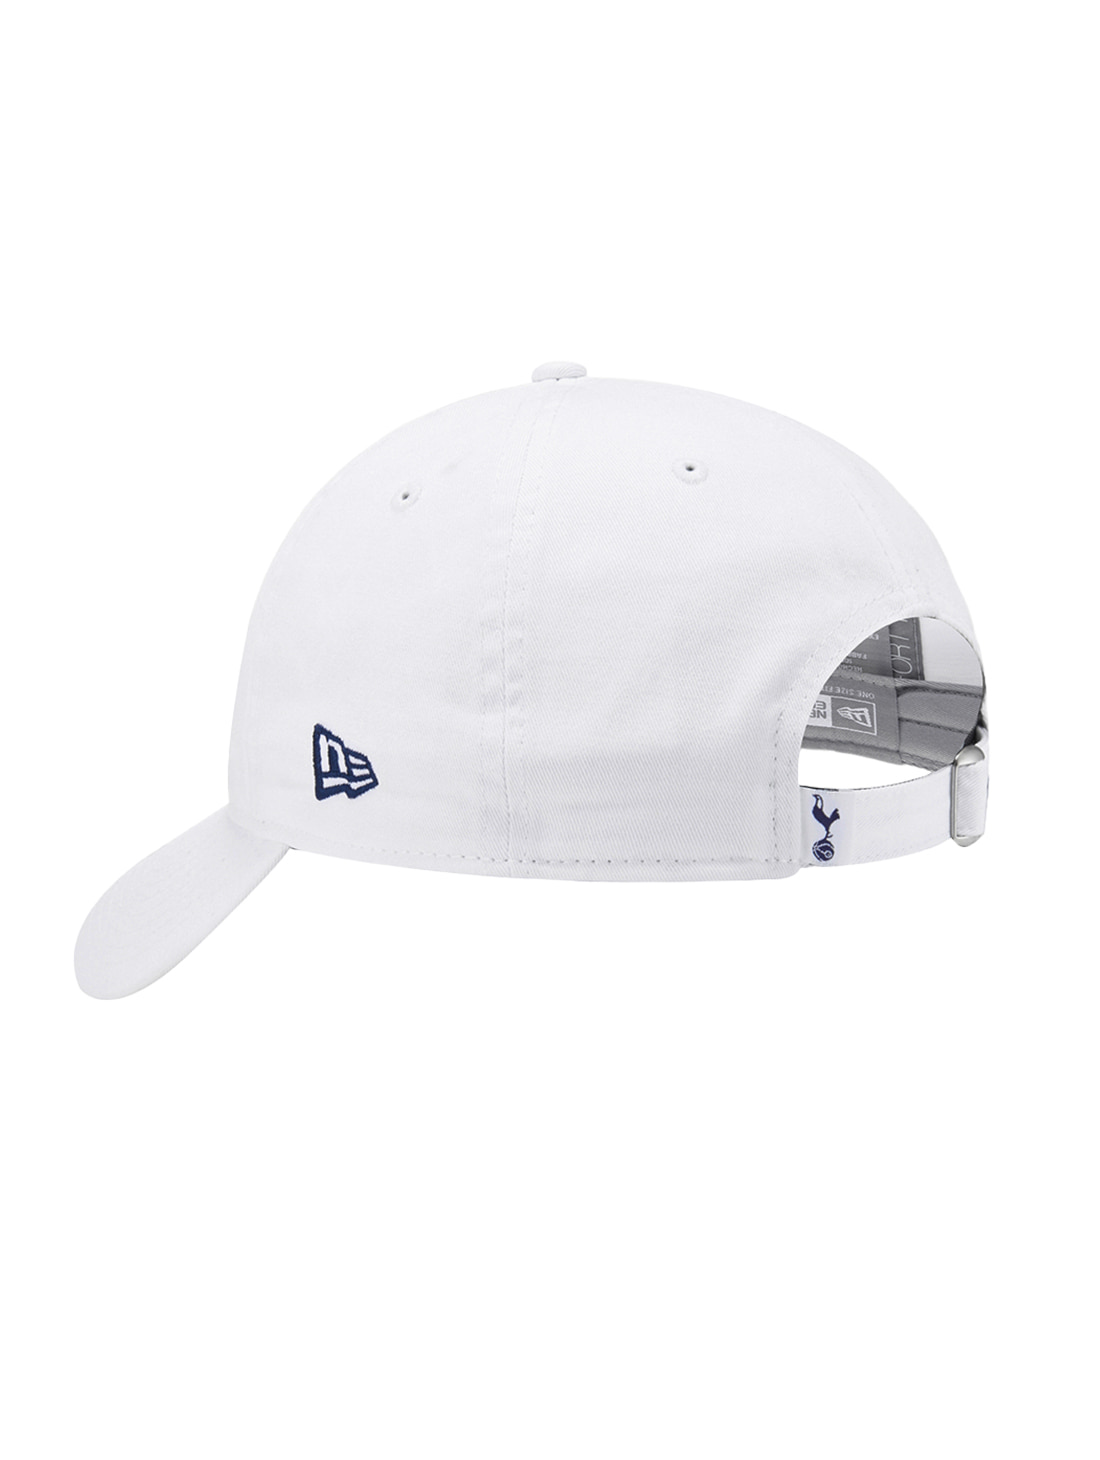 (Sold Out) TOTTENHAM 940UNST BALL CAP - WHITE